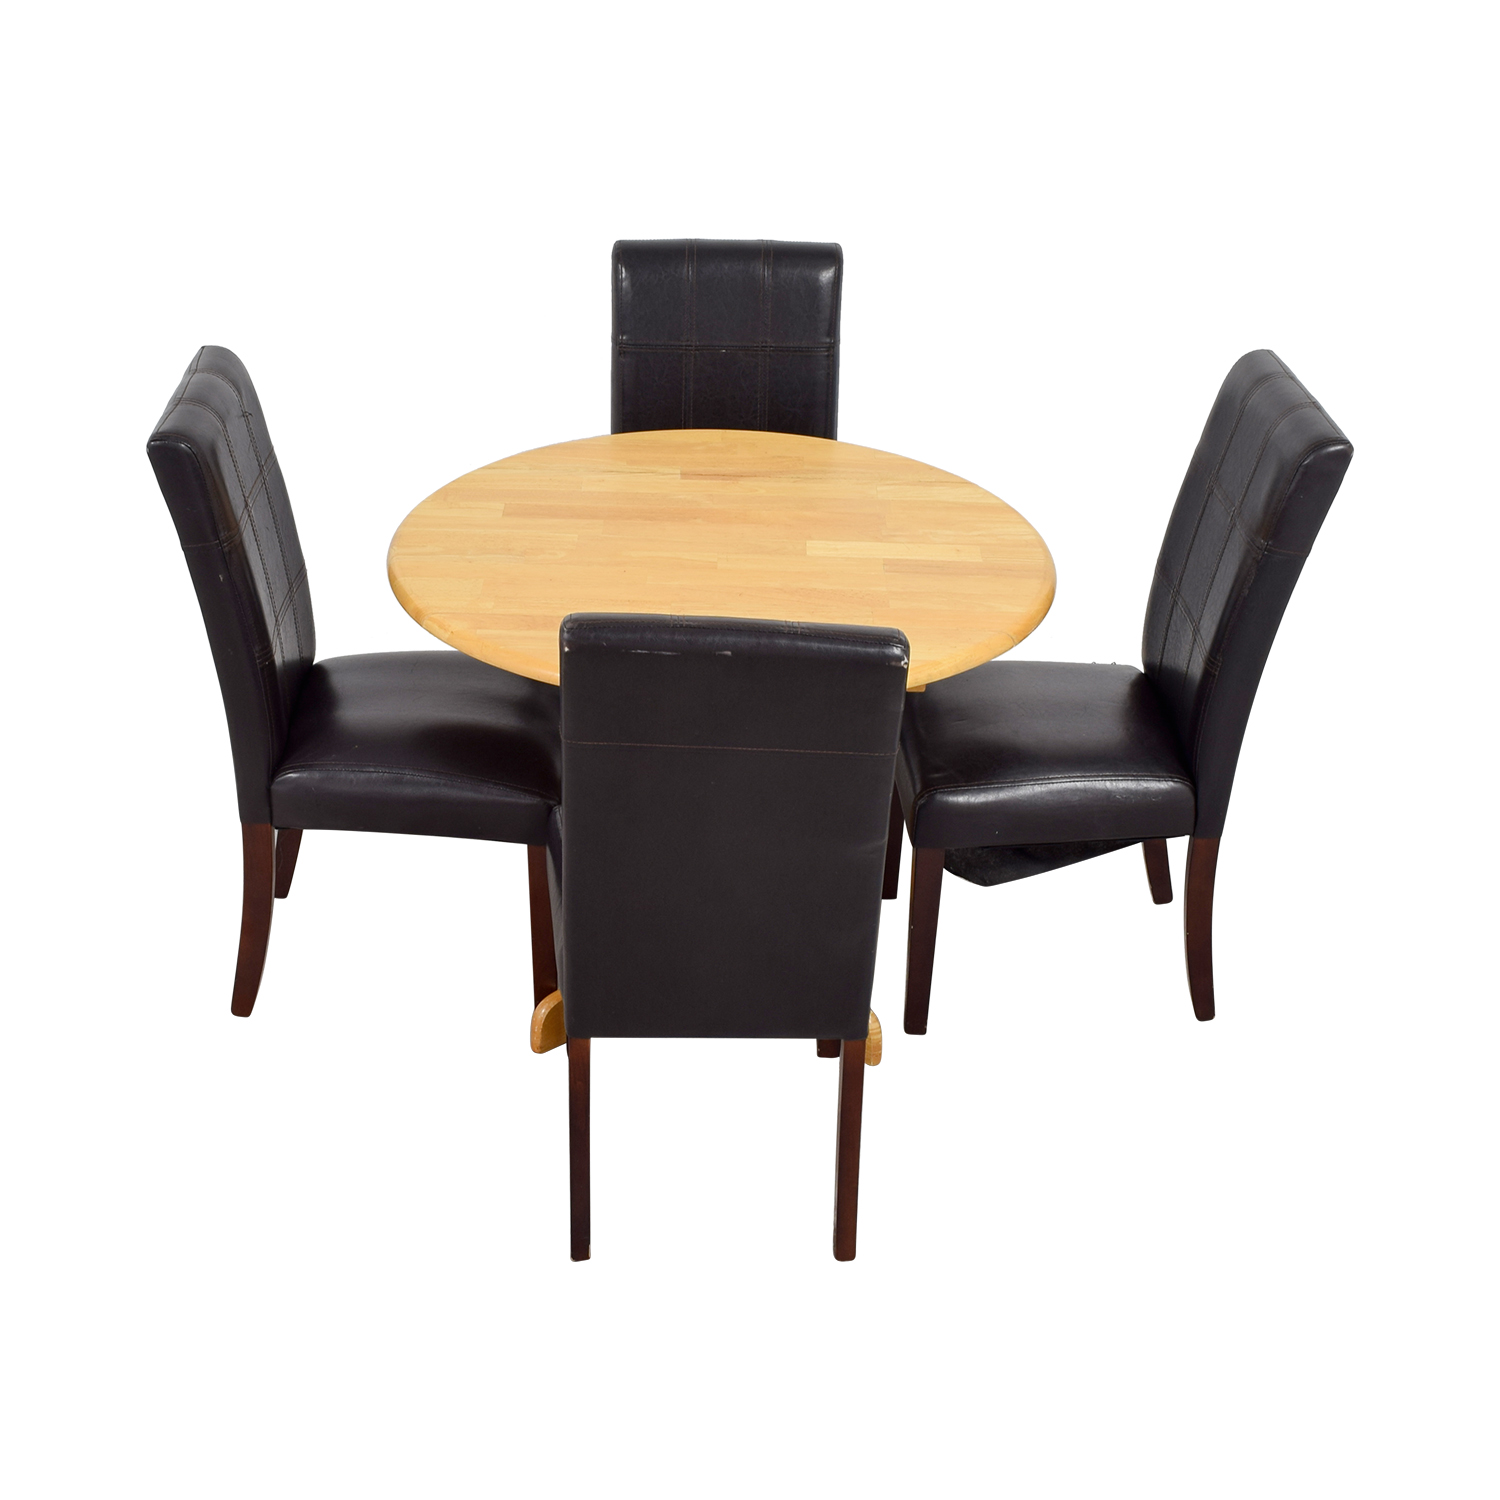 Raymour & Flannigan Raymour & Flannigan Rouch Butcher Block Table with Brown Leather Chairs